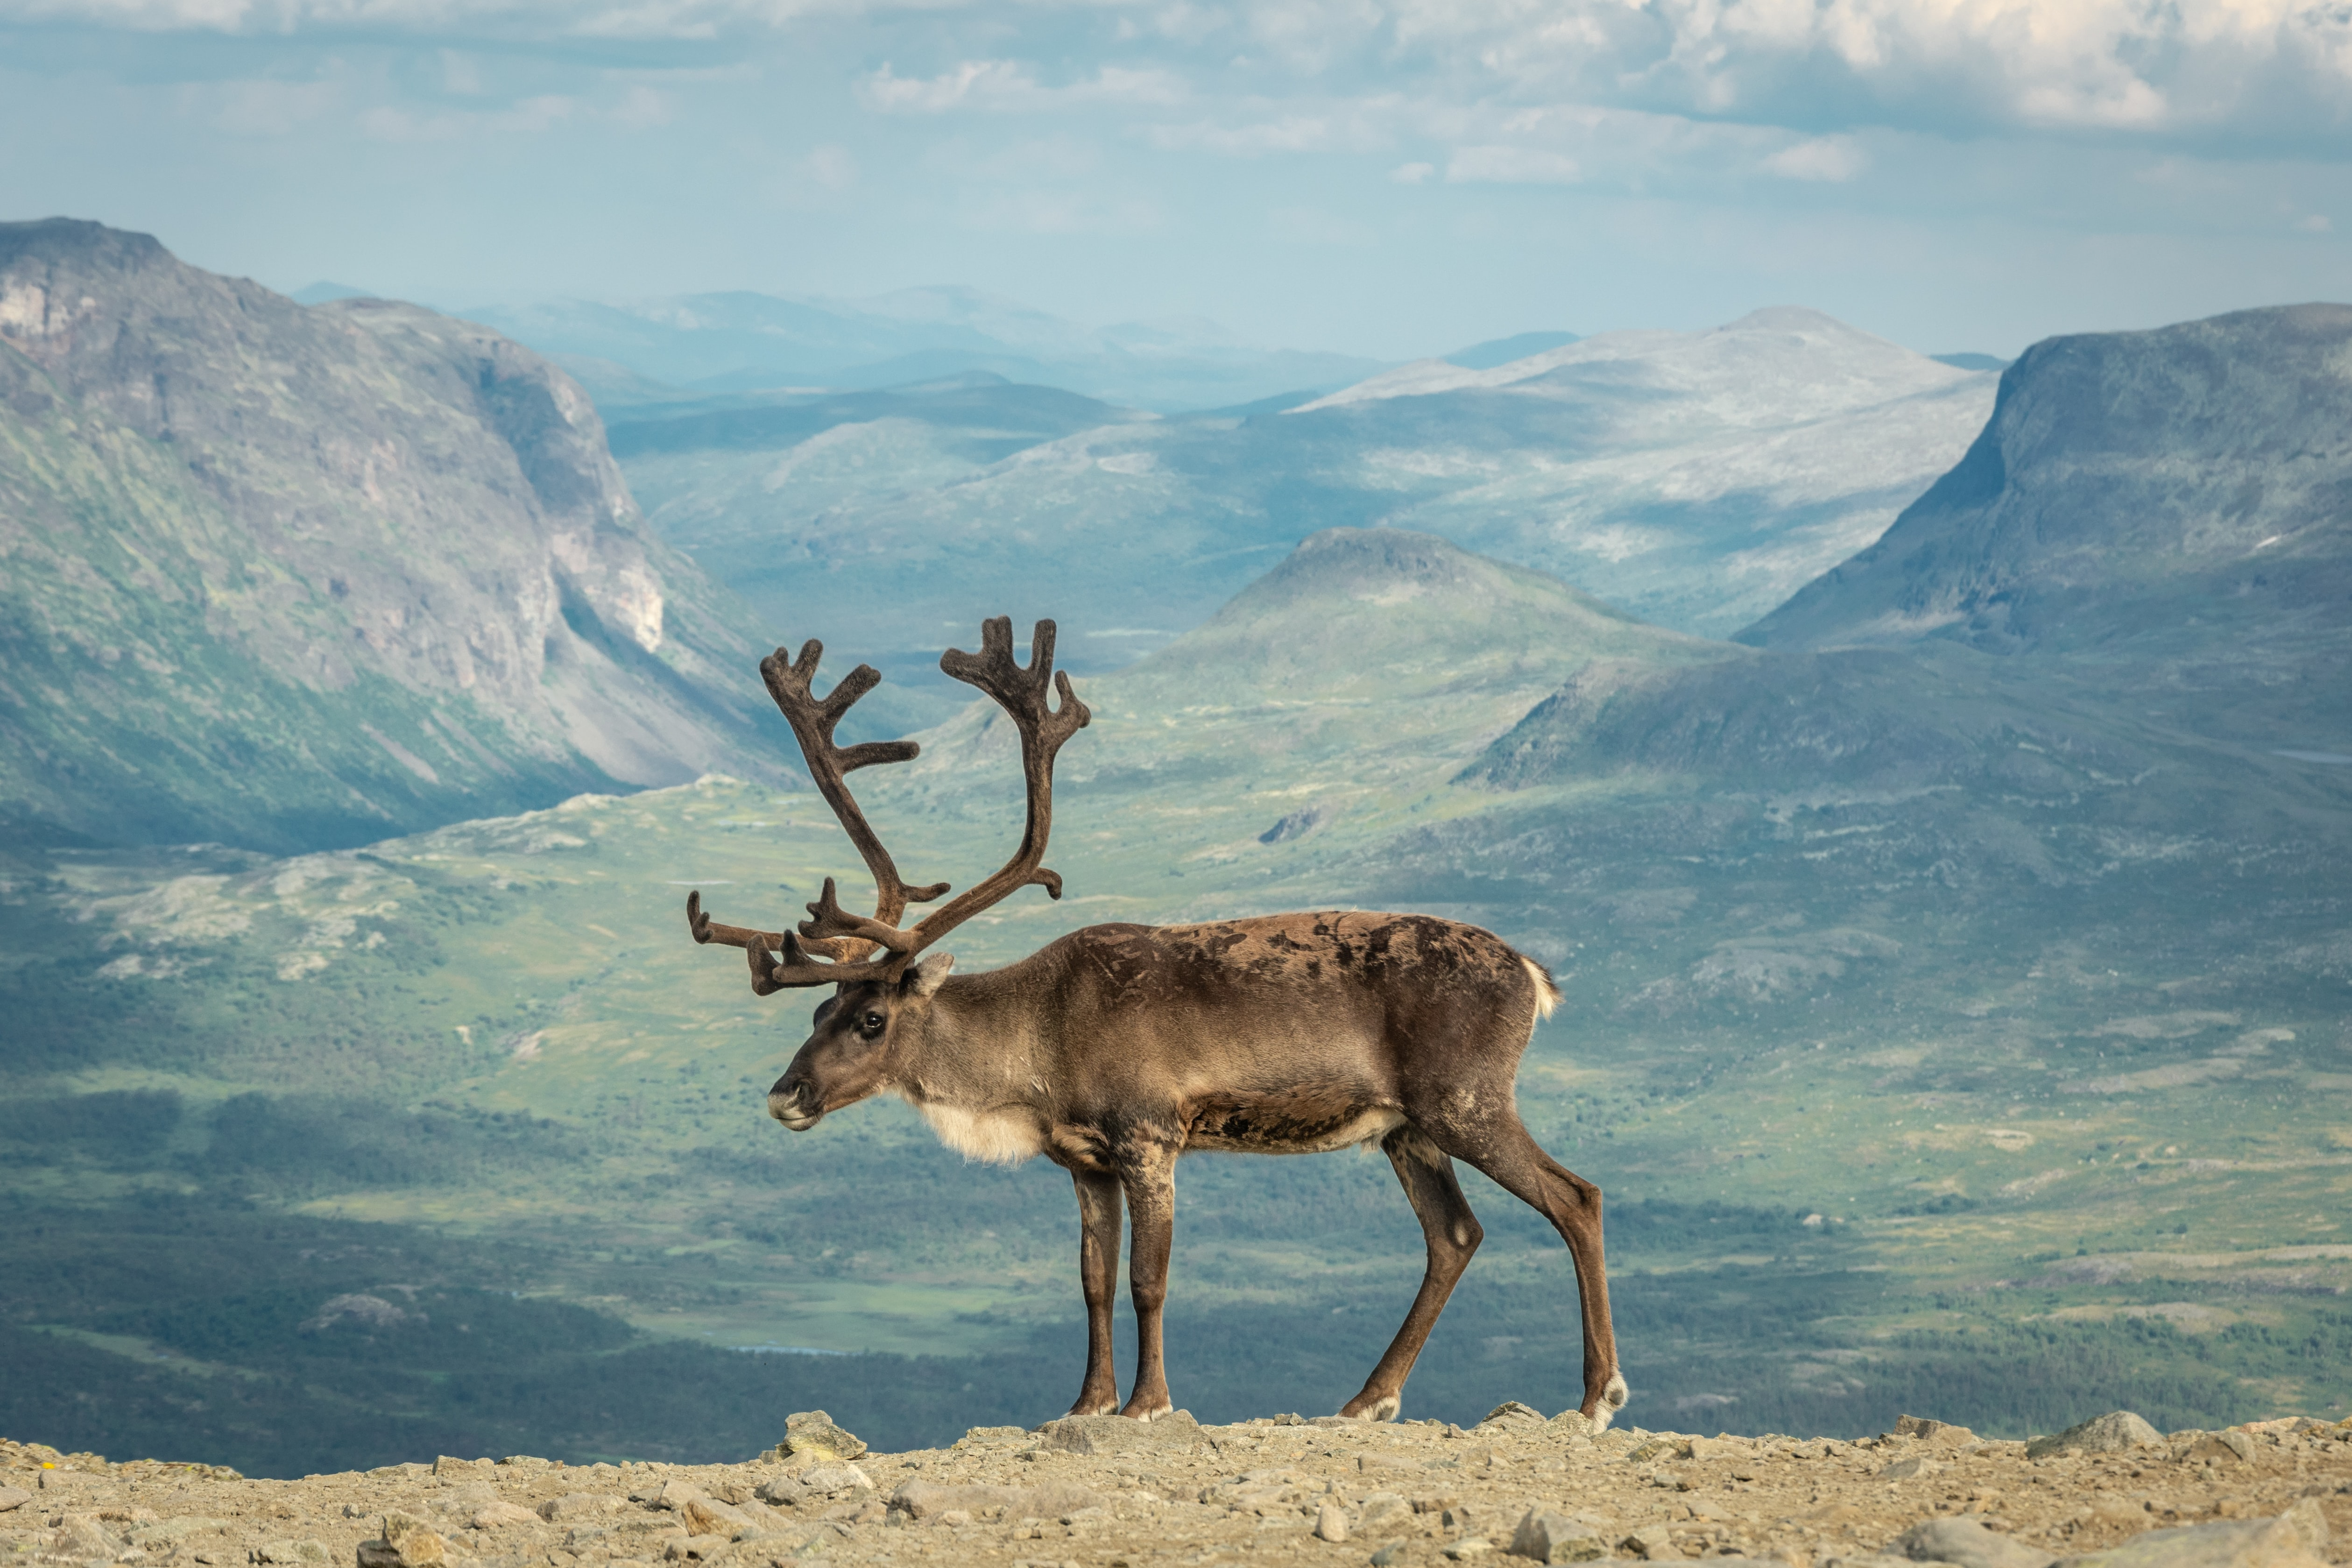 Jotunheimen National Park, Norway, National Parks to Visit in Europe